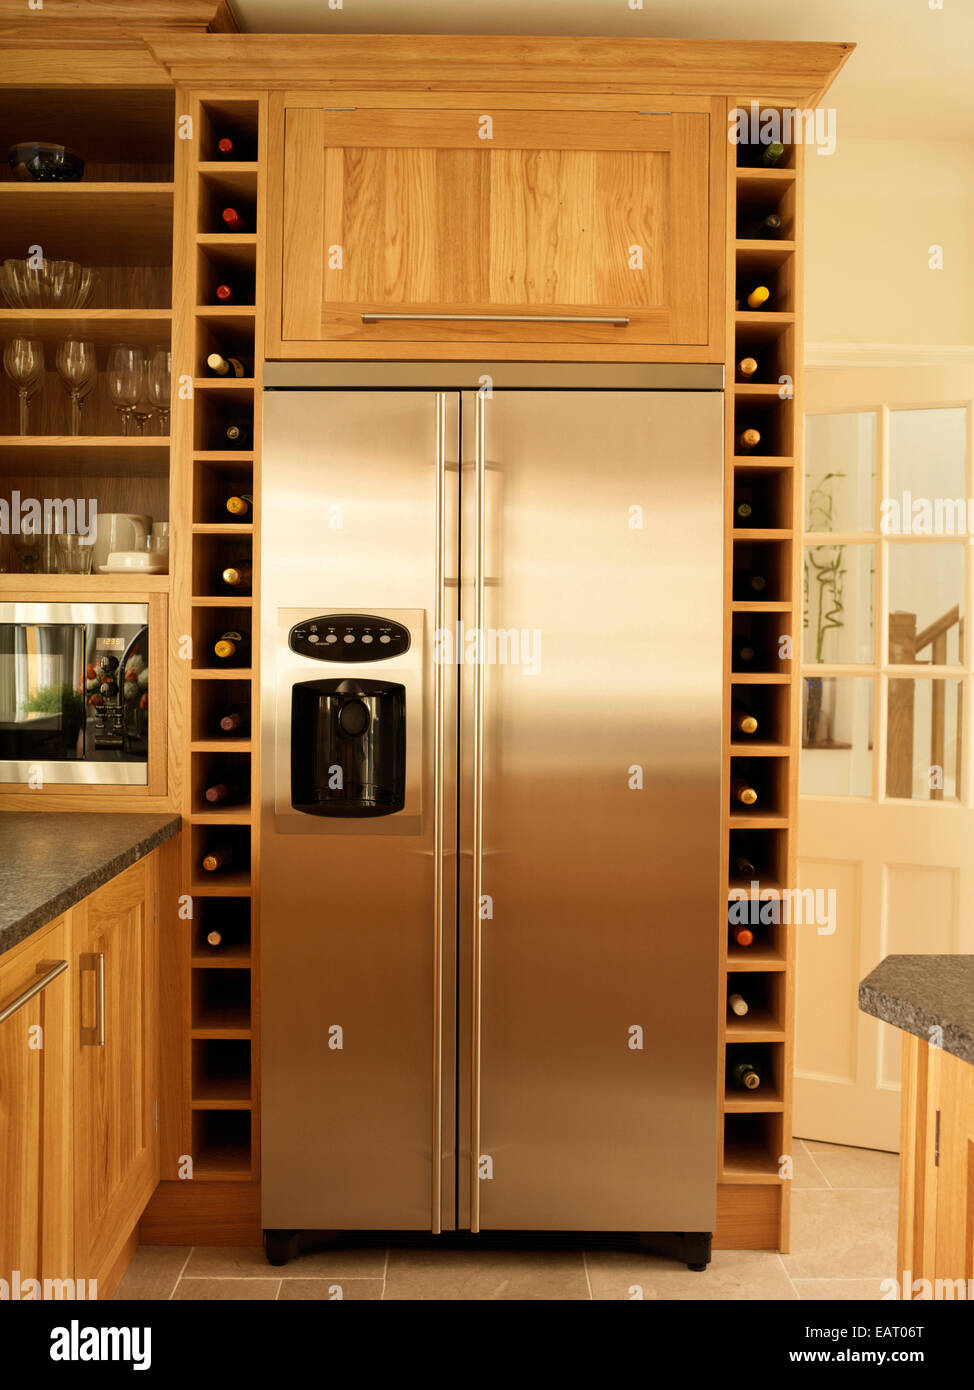 Built in wine racks for kitchen cabinets -  Kitchen Cabinets Stainless Steel Fridge And Built In Wine Rack Download